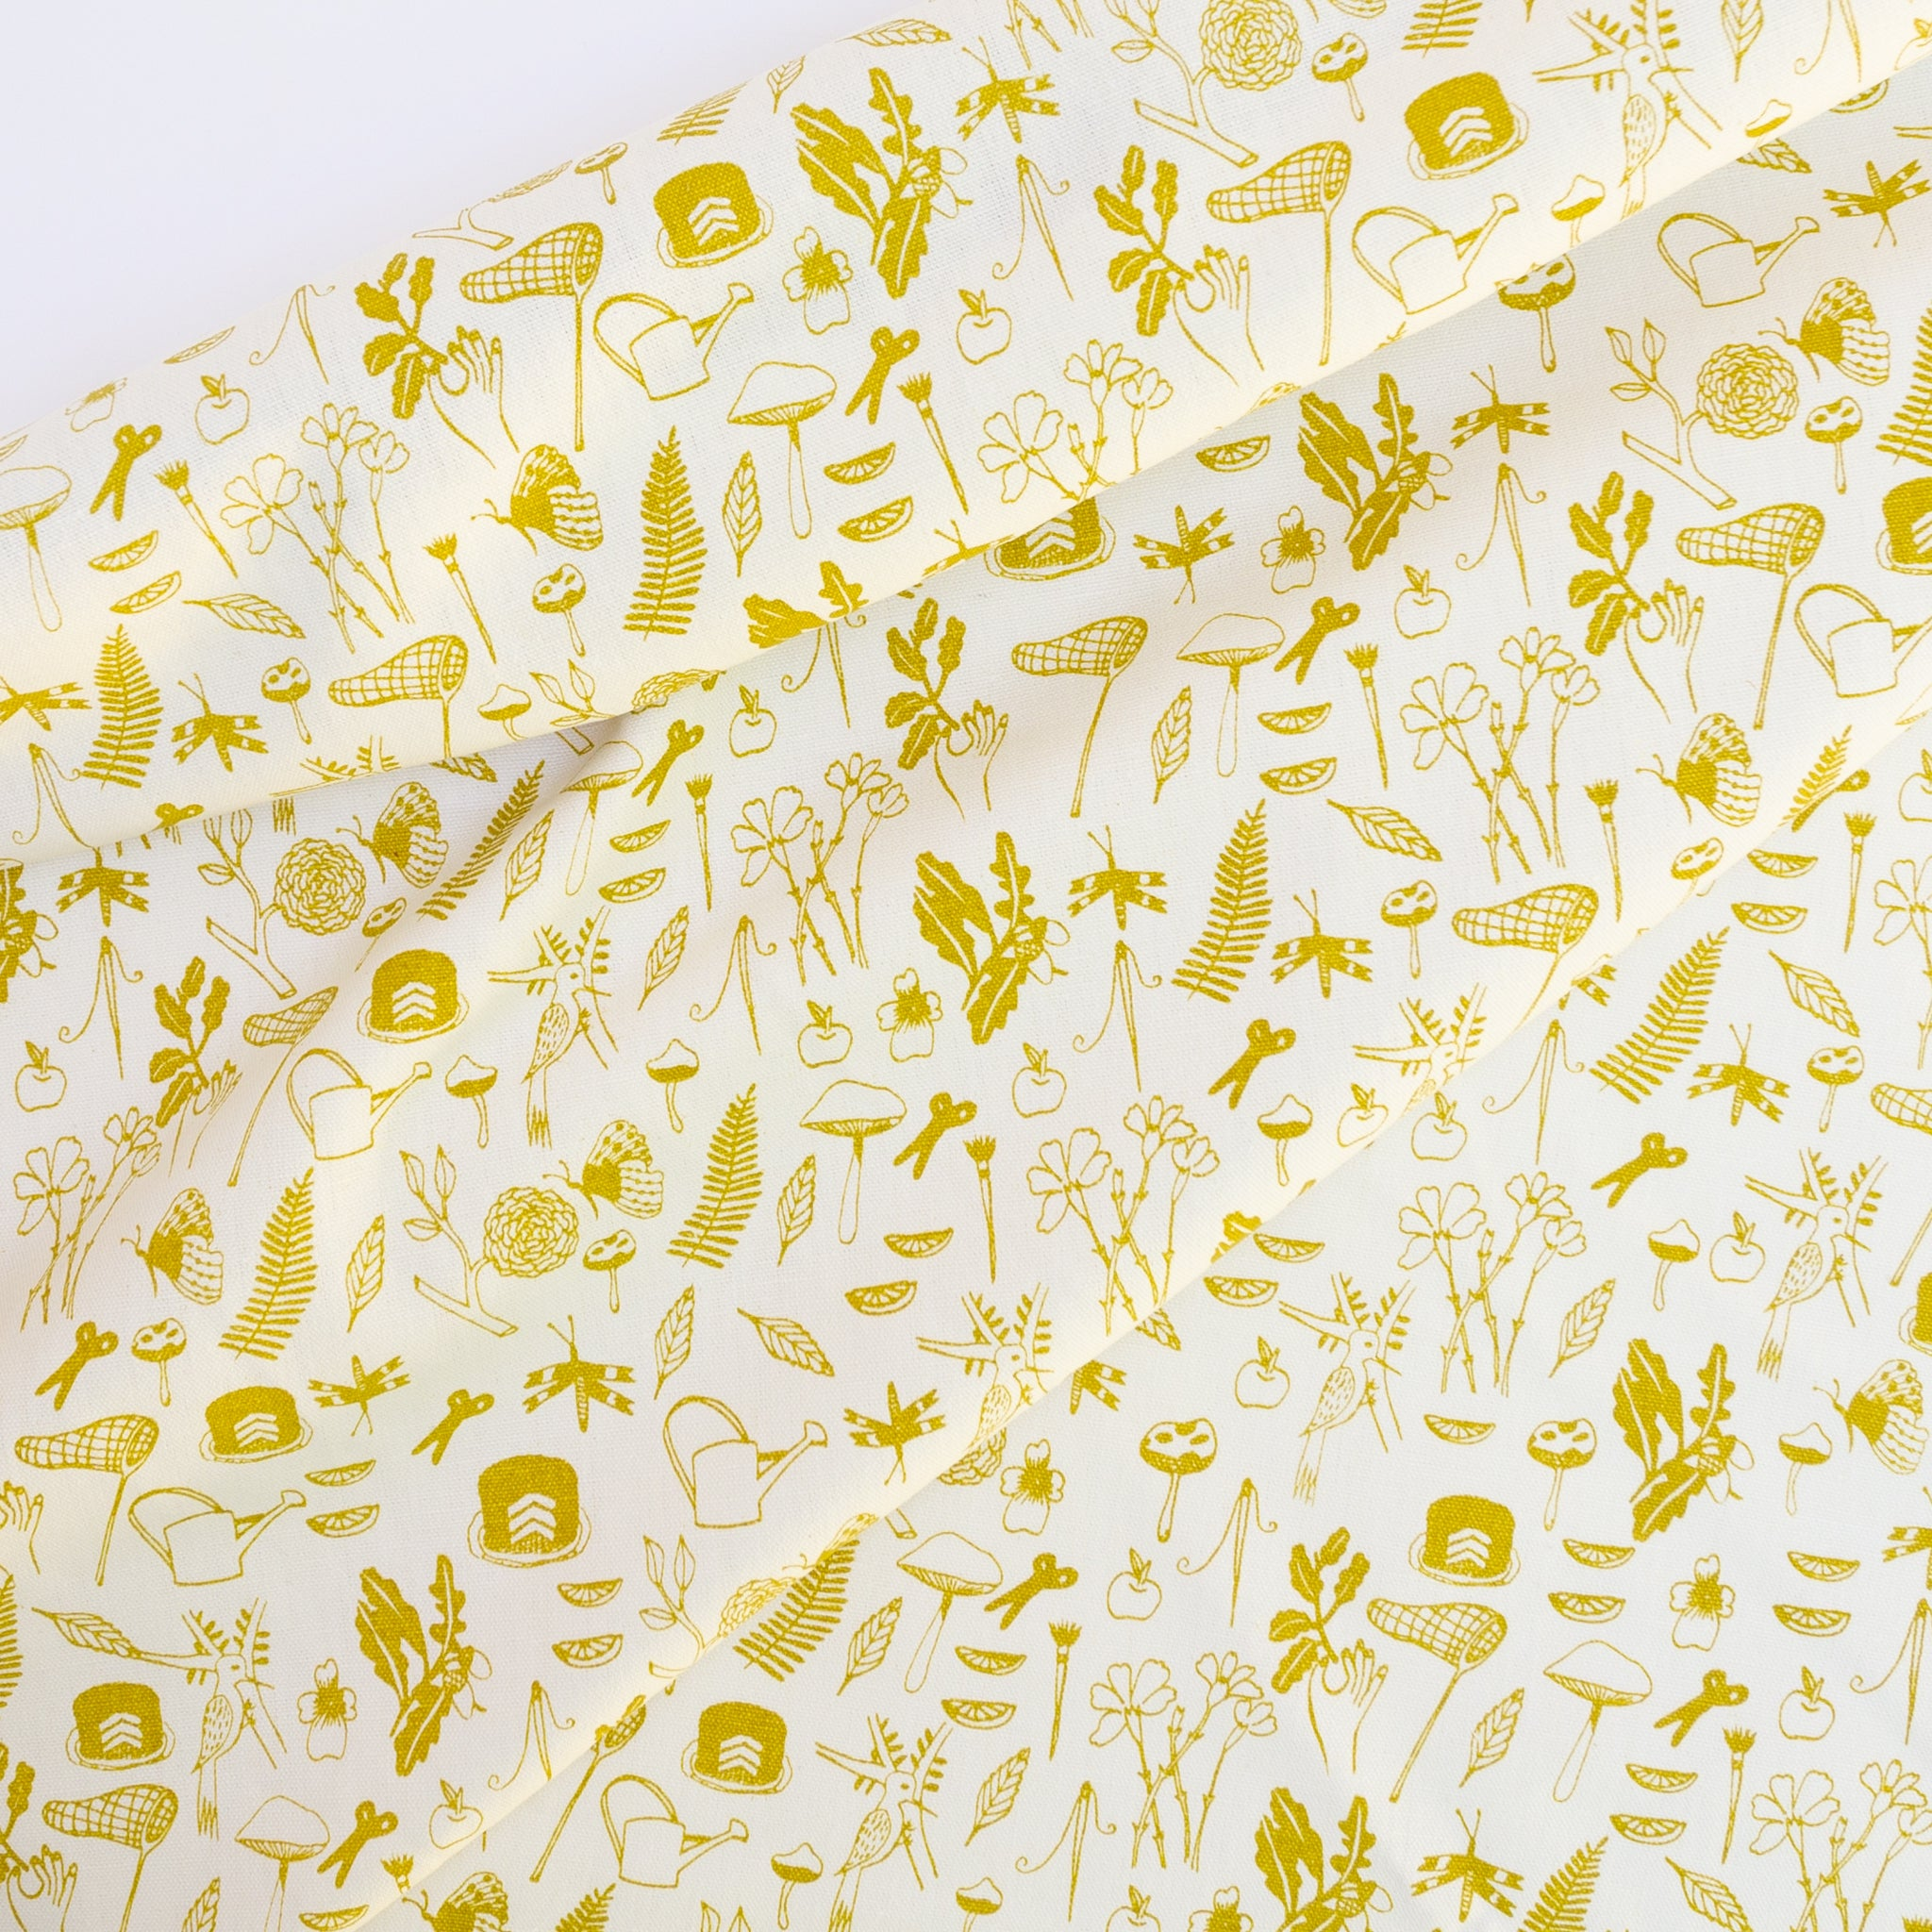 Screen printed fabric yardage with little illustrations in yellow